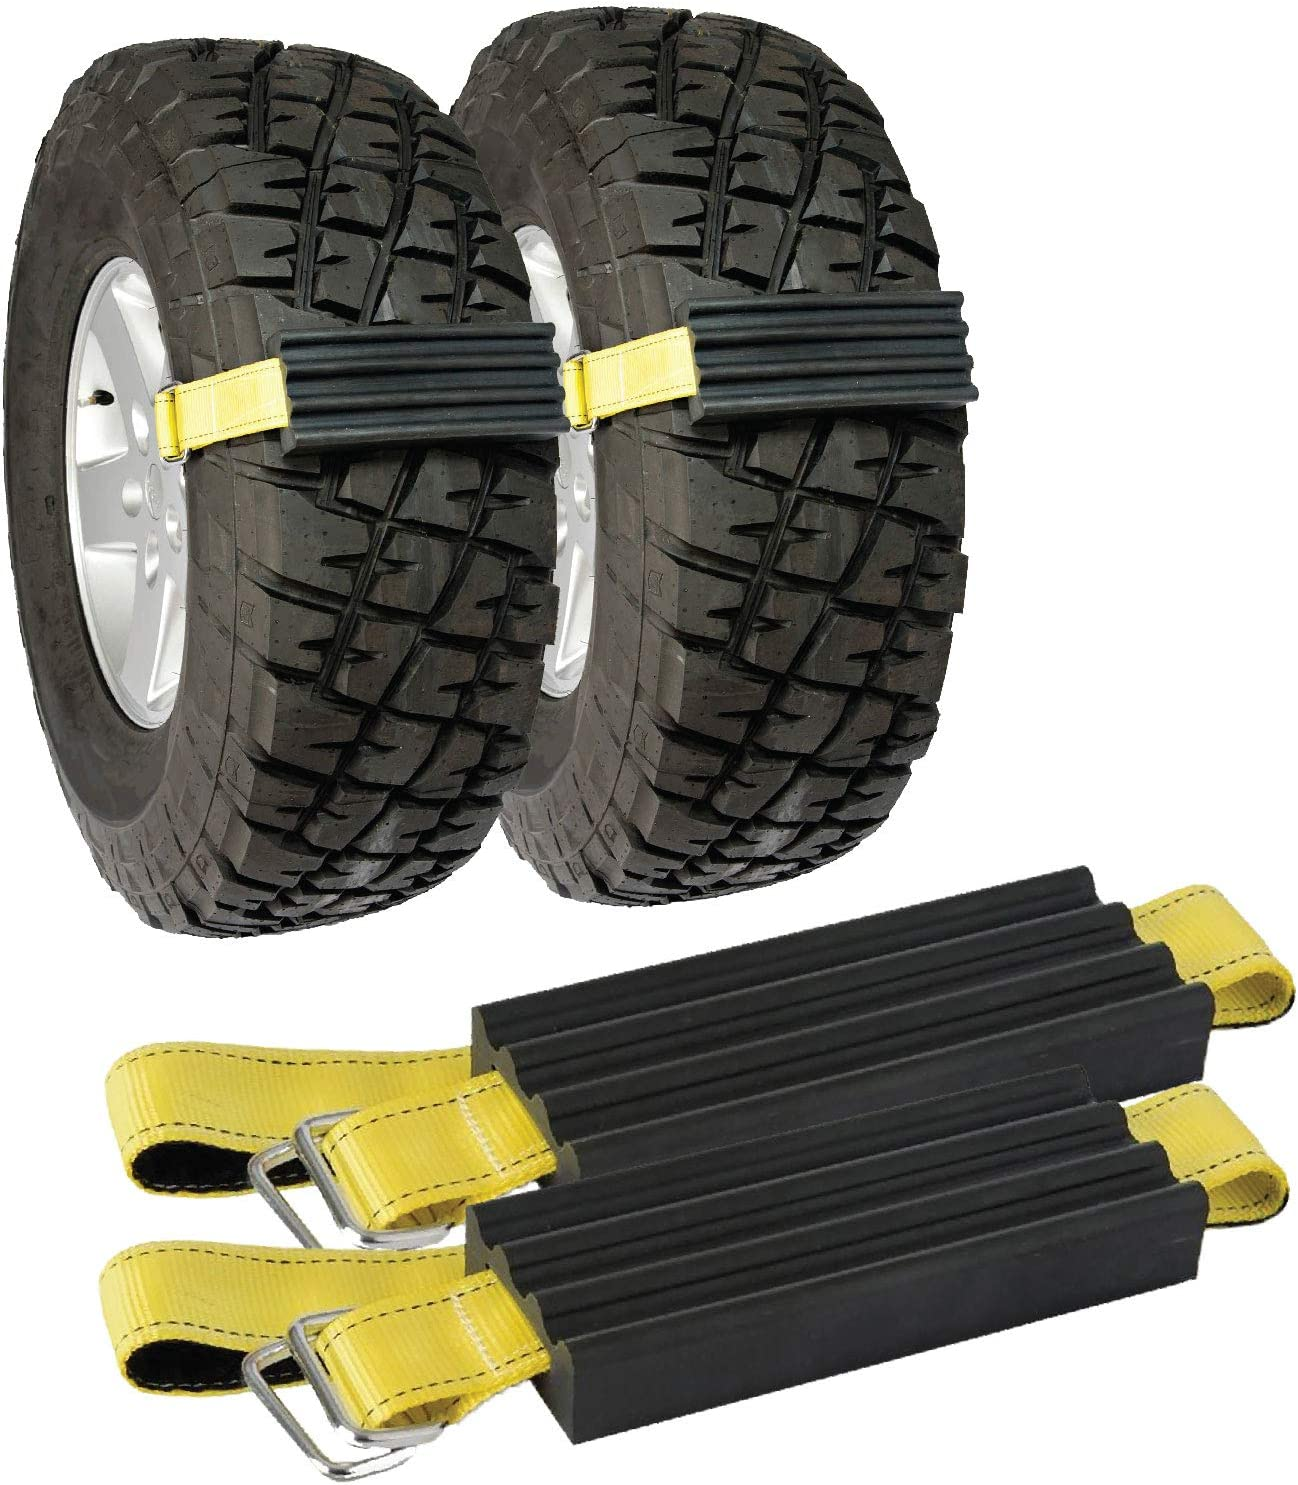 Tracgrabber Tire Traction Device